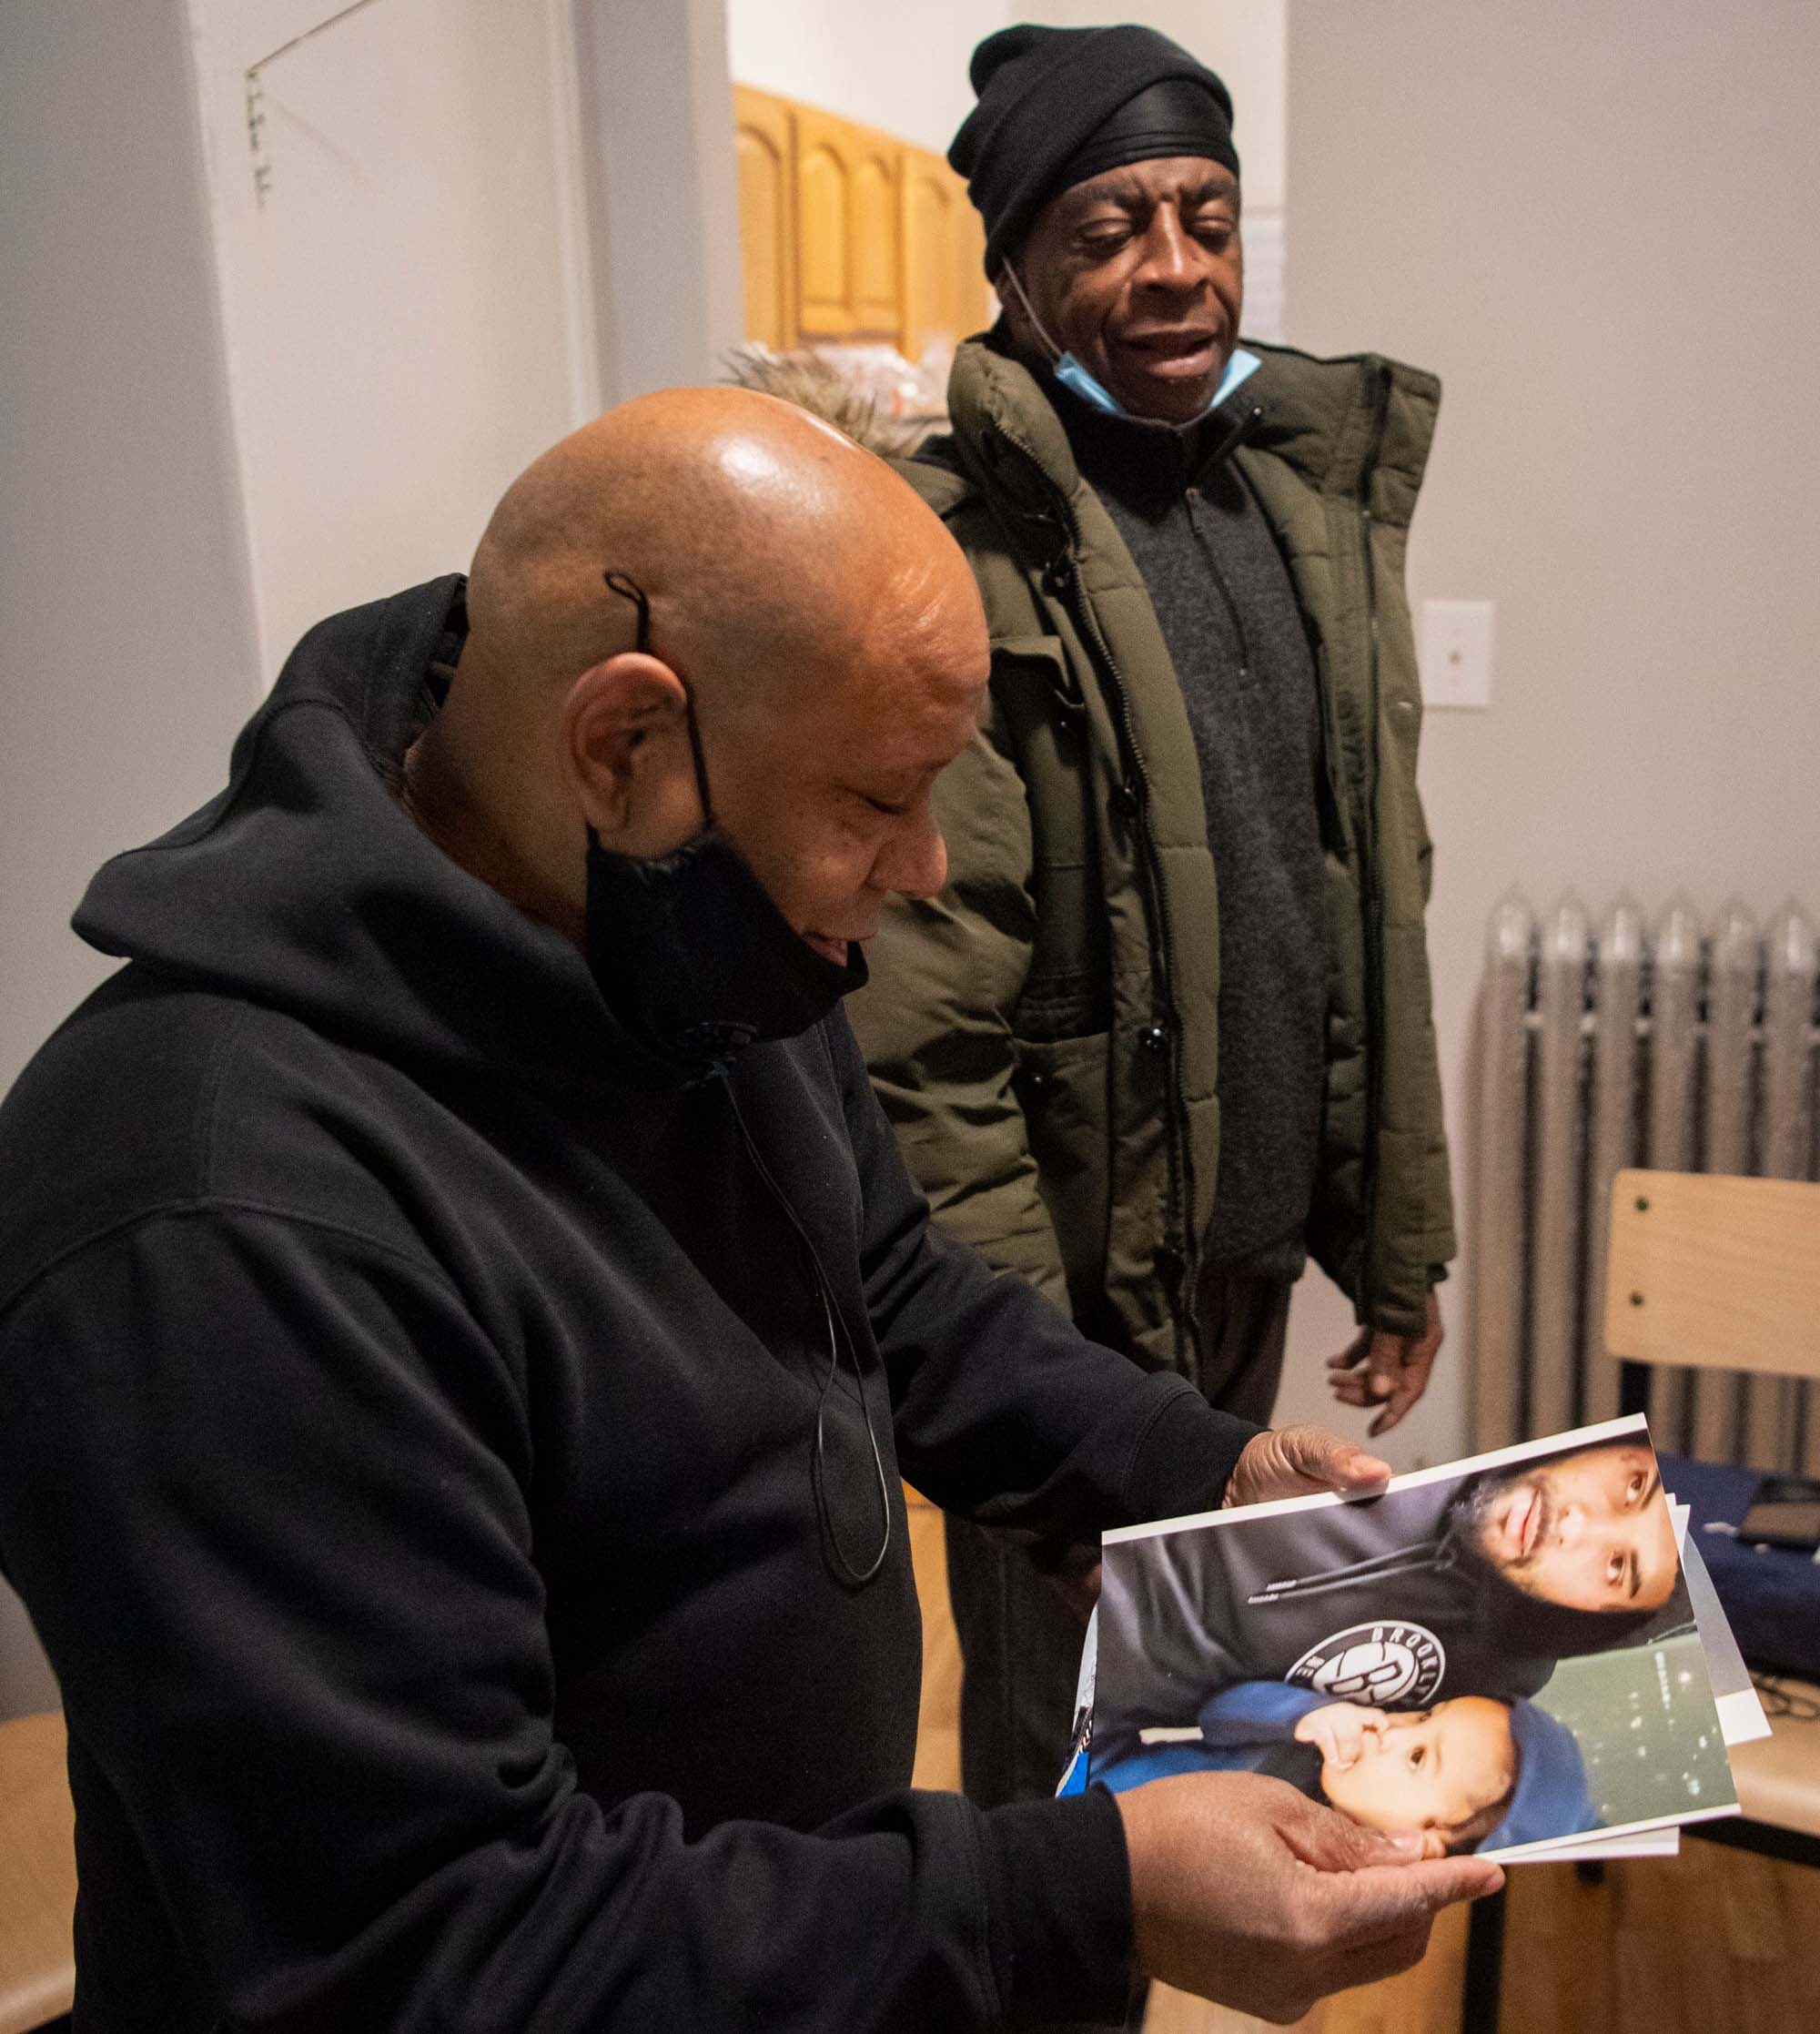 Shams DaBaron (left) and Larry Thomas (right) look at photos of Thomas' family in his new home in West Harlem on Dec. 6, 2020.